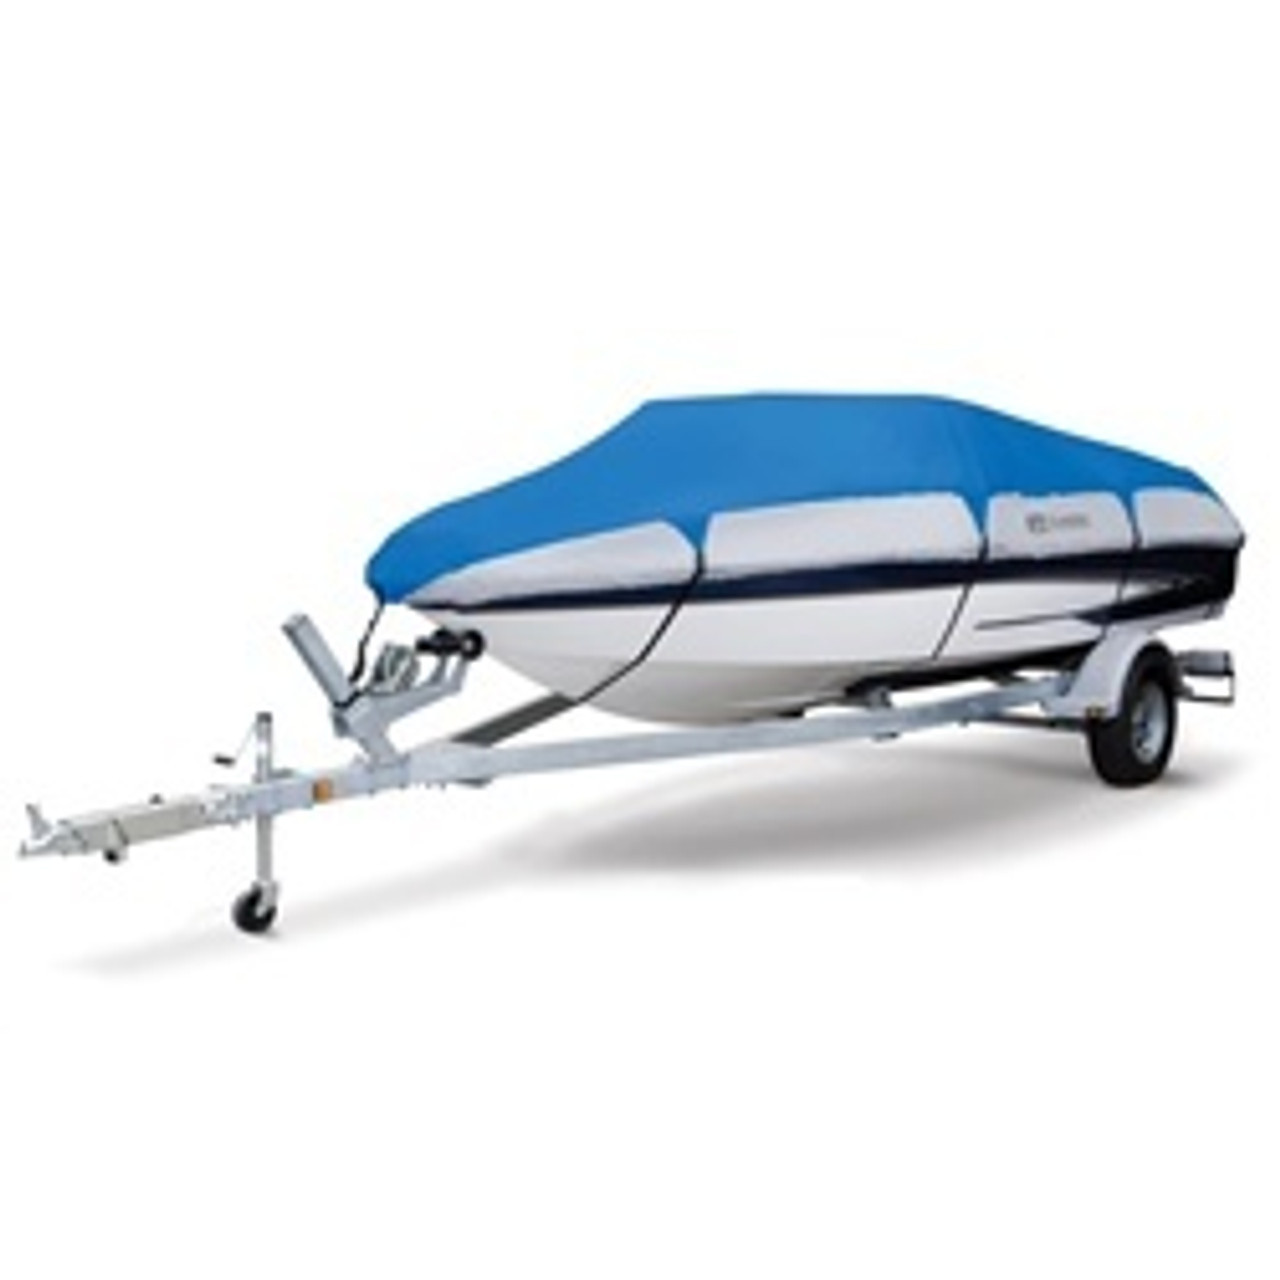 Orion Deluxe Boat Cover